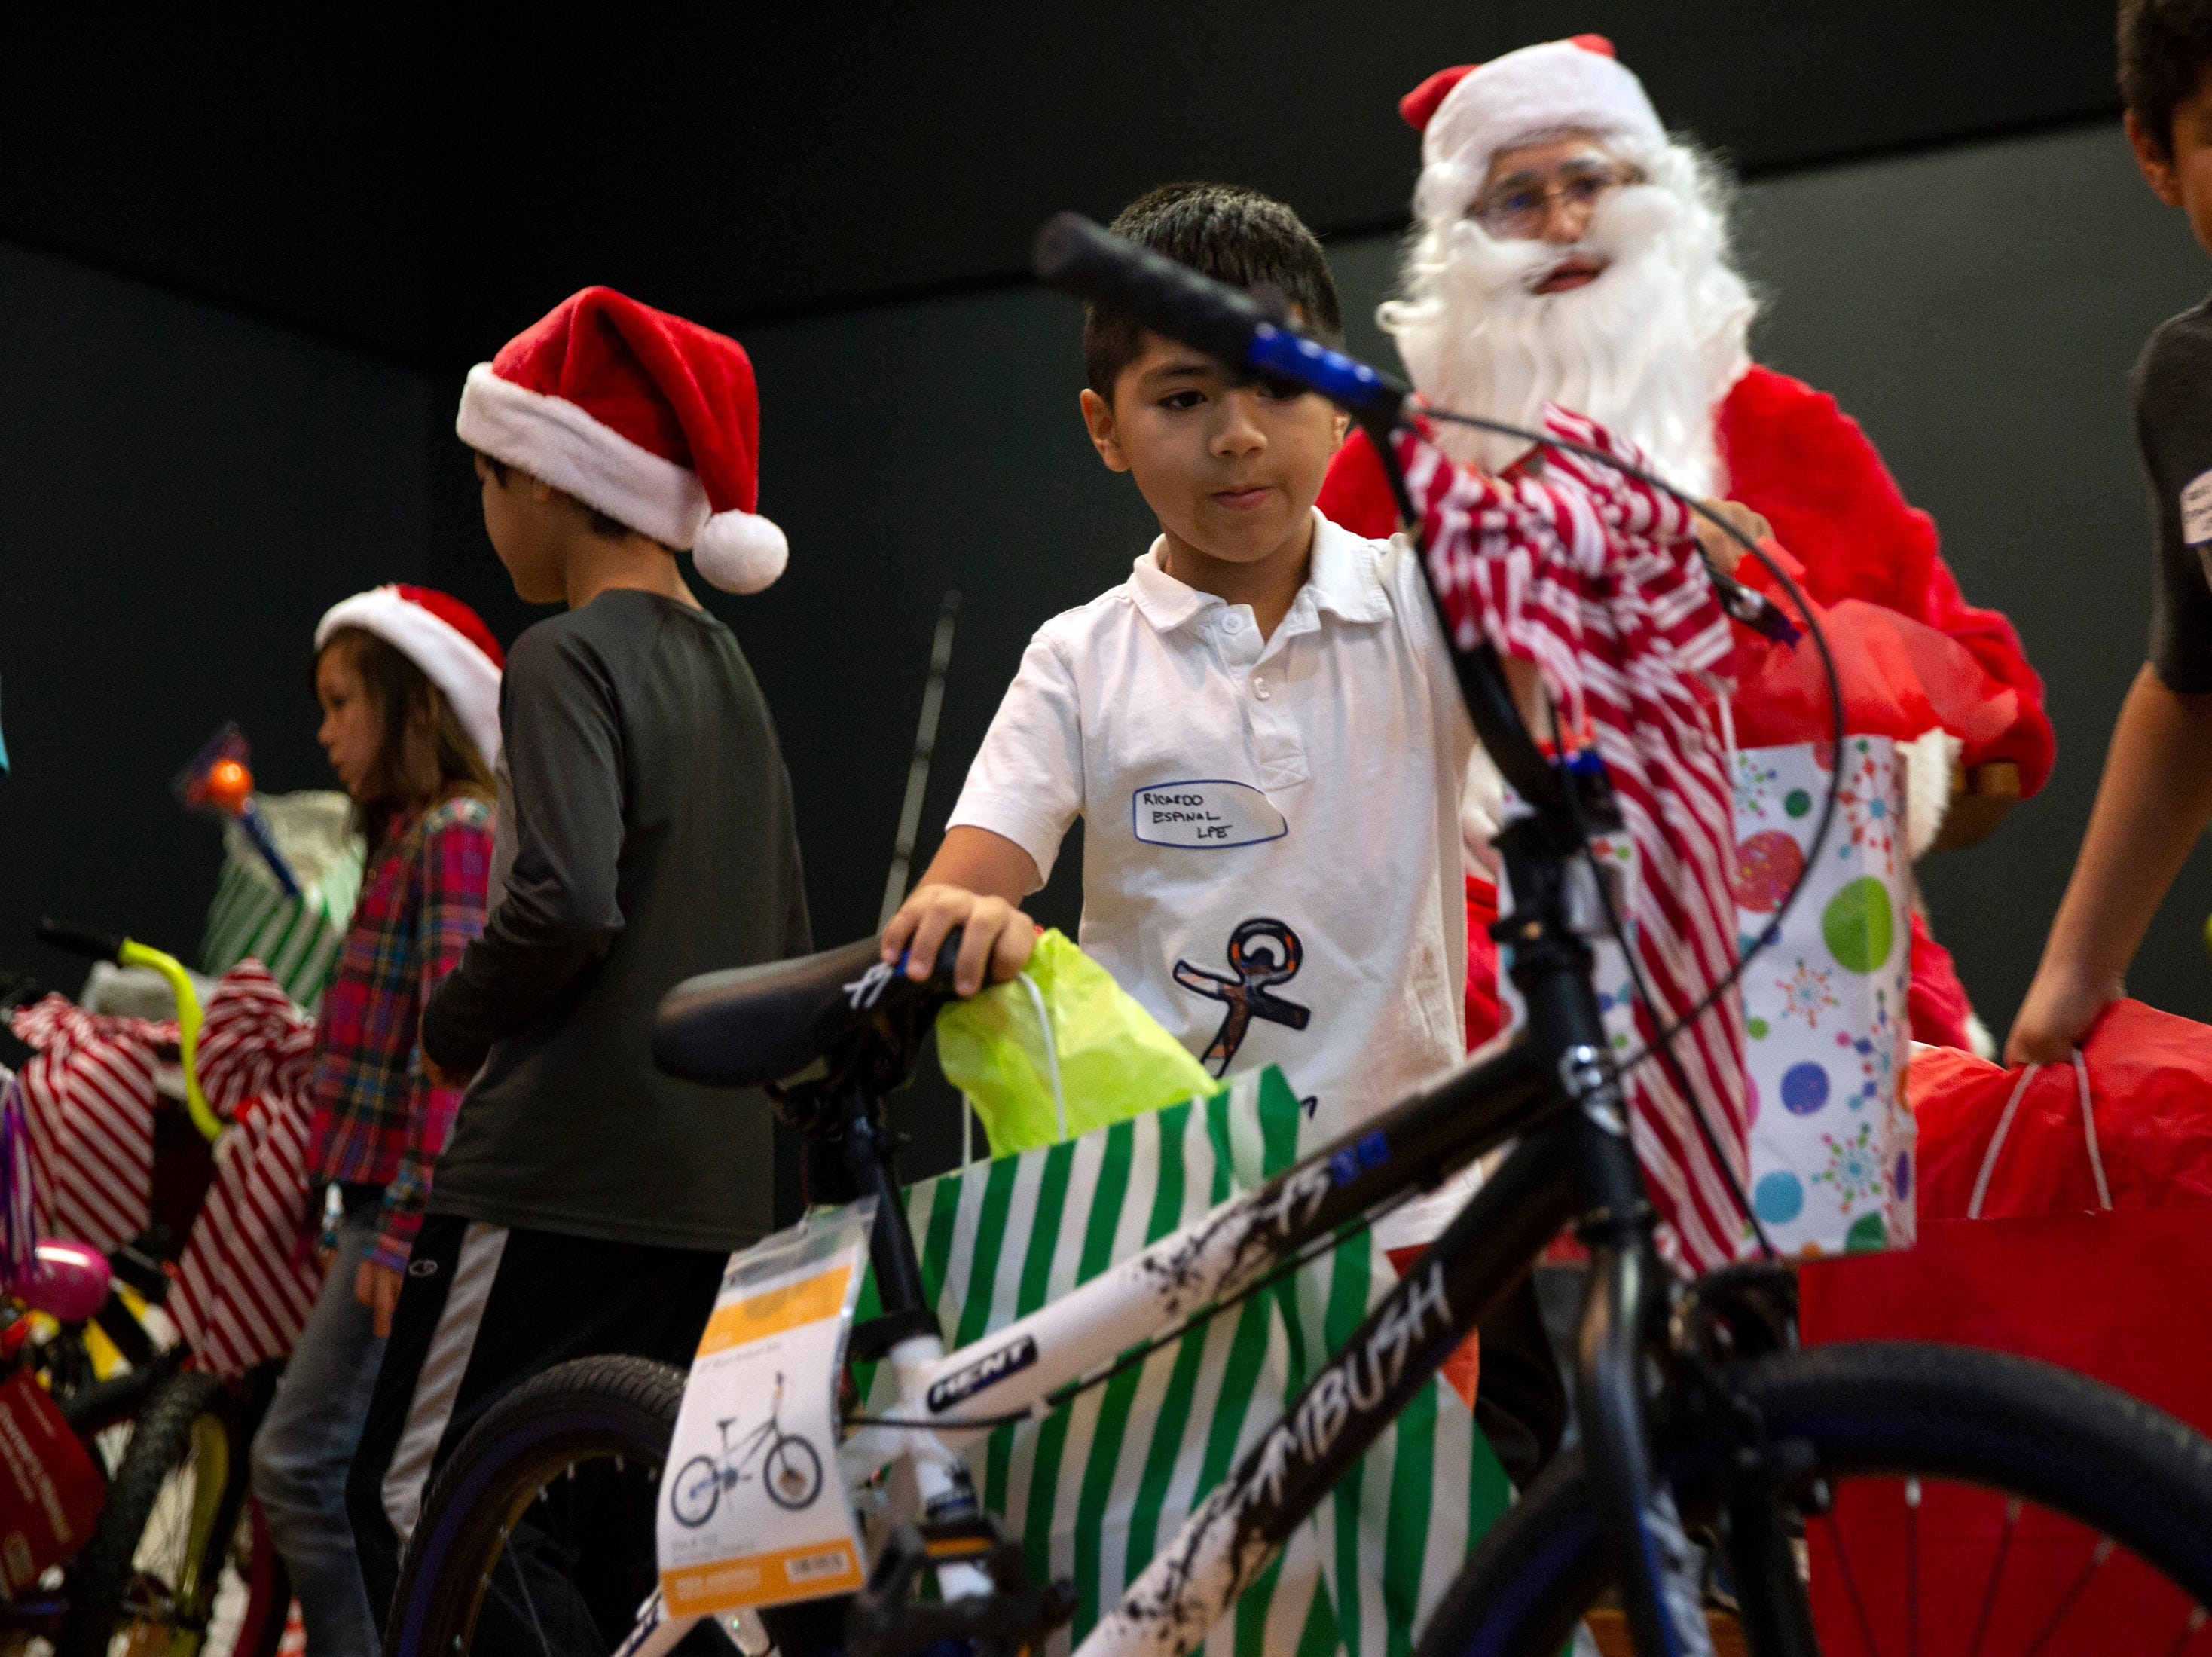 Pedro Espinal Martinez looks over his brand new bike given to him during a charitable event hosted by the Fraternal Order of Police, Lodge 38 at the River Park Community Center, Saturday, Dec. 22, 2018 in Naples.